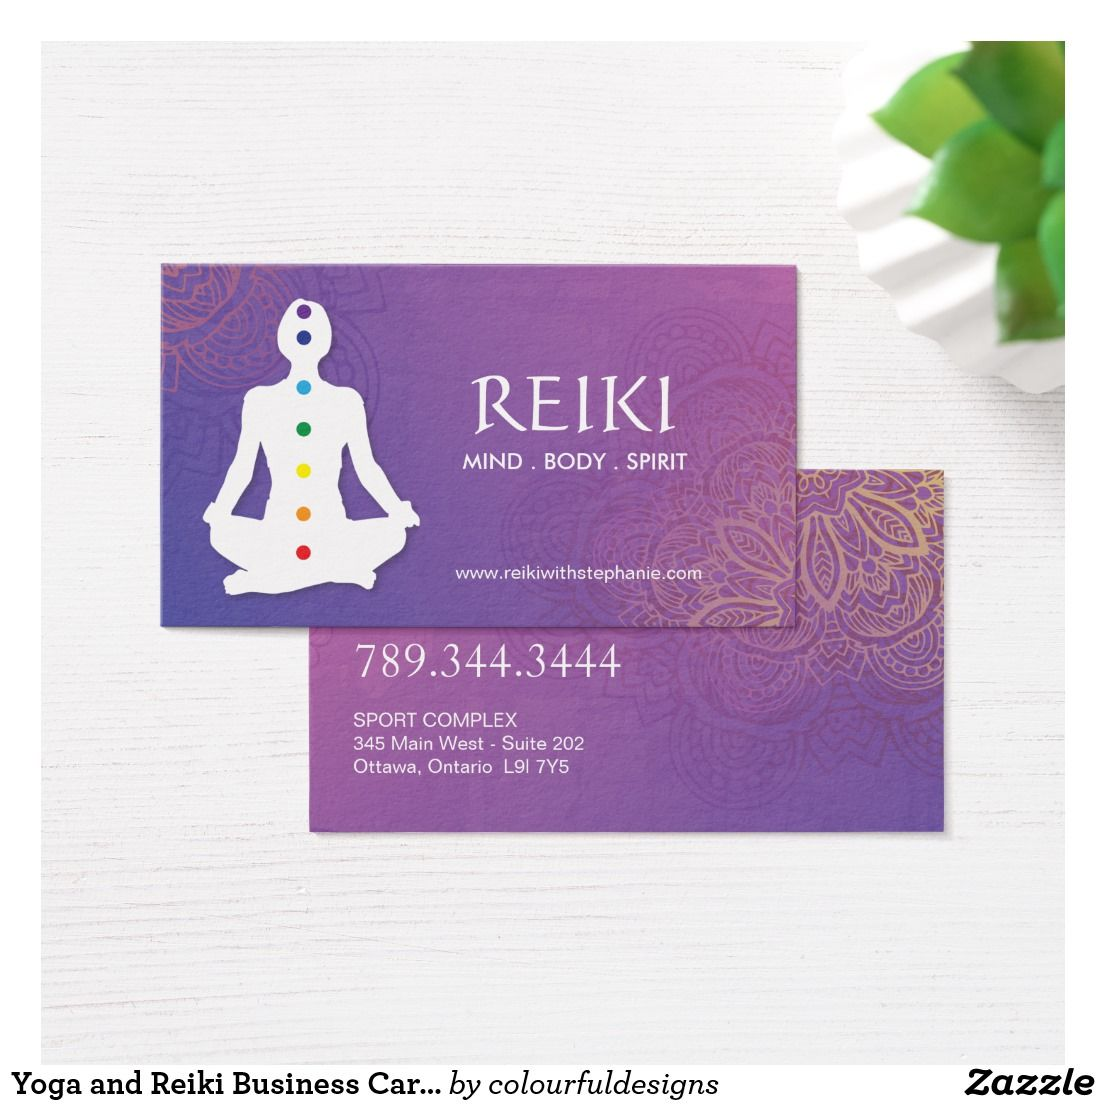 Yoga And Reiki Business Cards Zazzle Co Uk Reiki Business Business Cards Cards